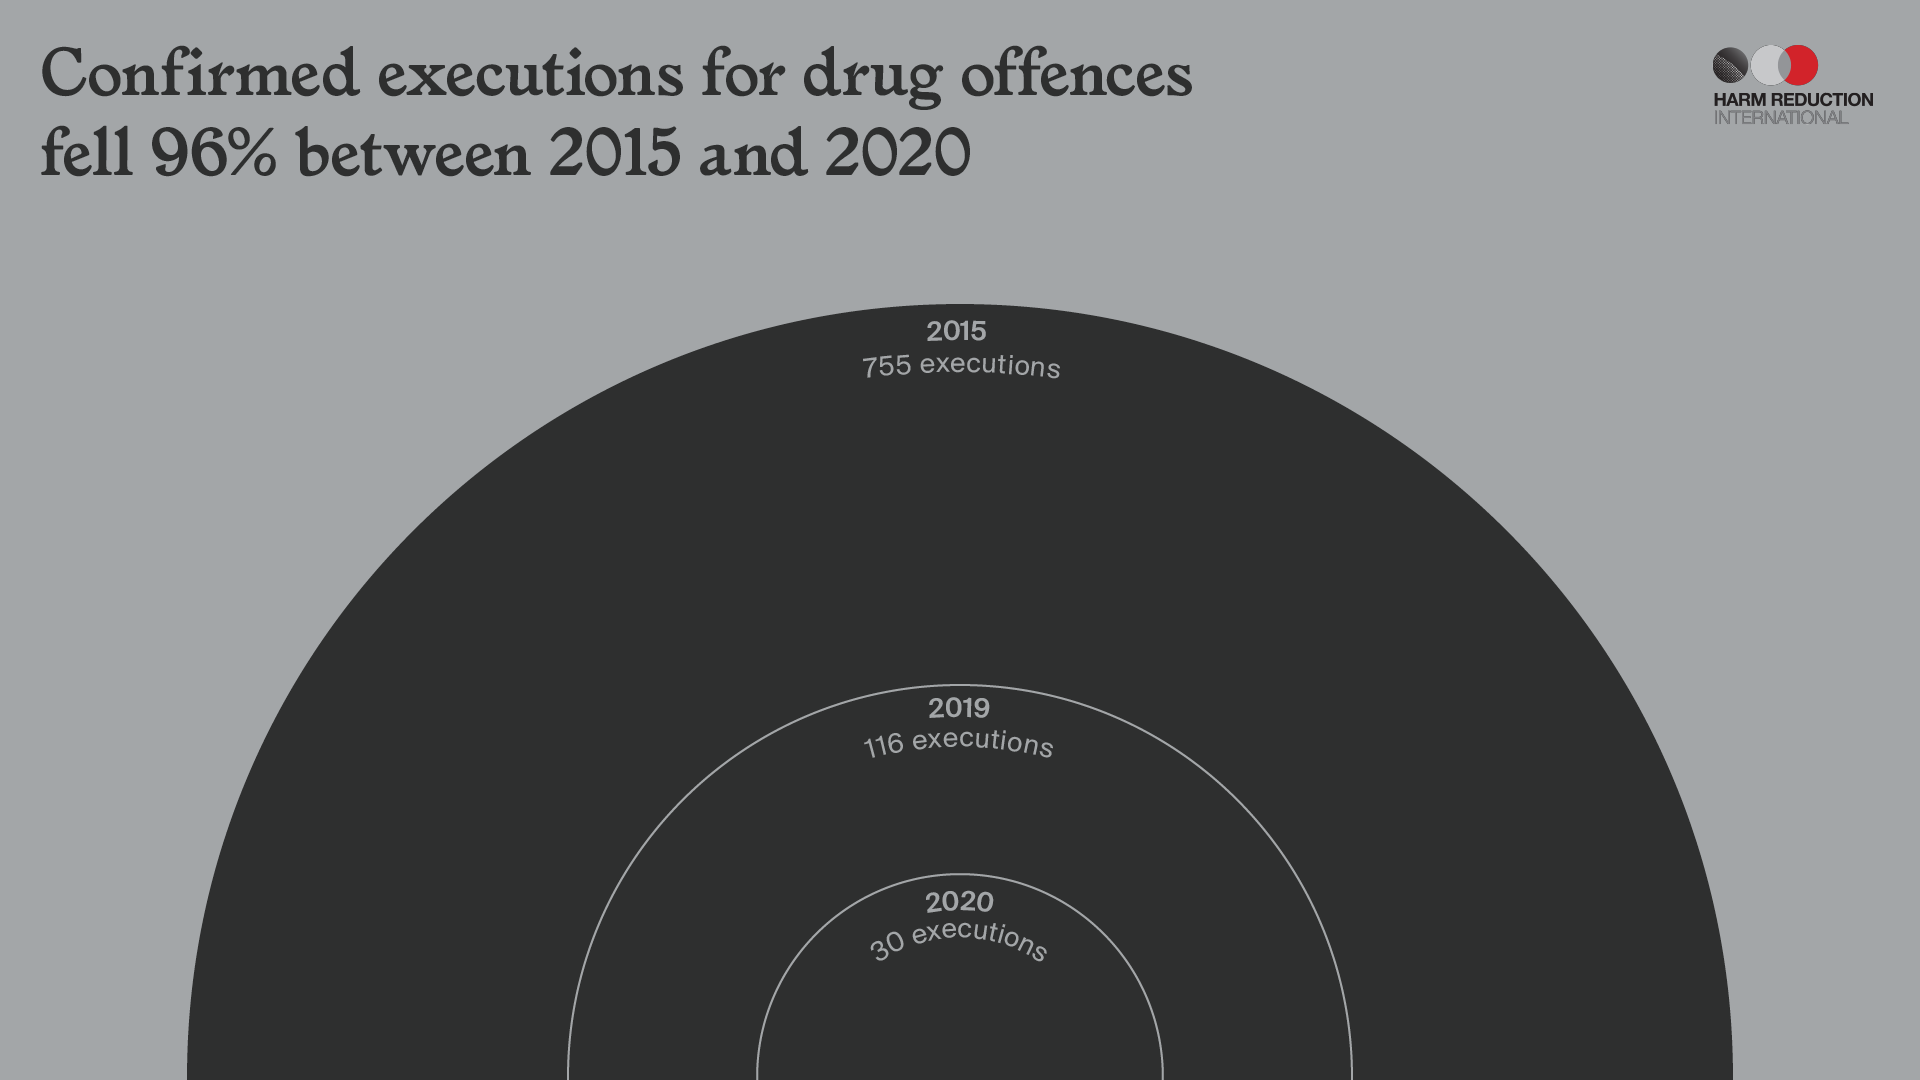 Confirmed Executions for drug offences fell 96% between 2015 and 2020